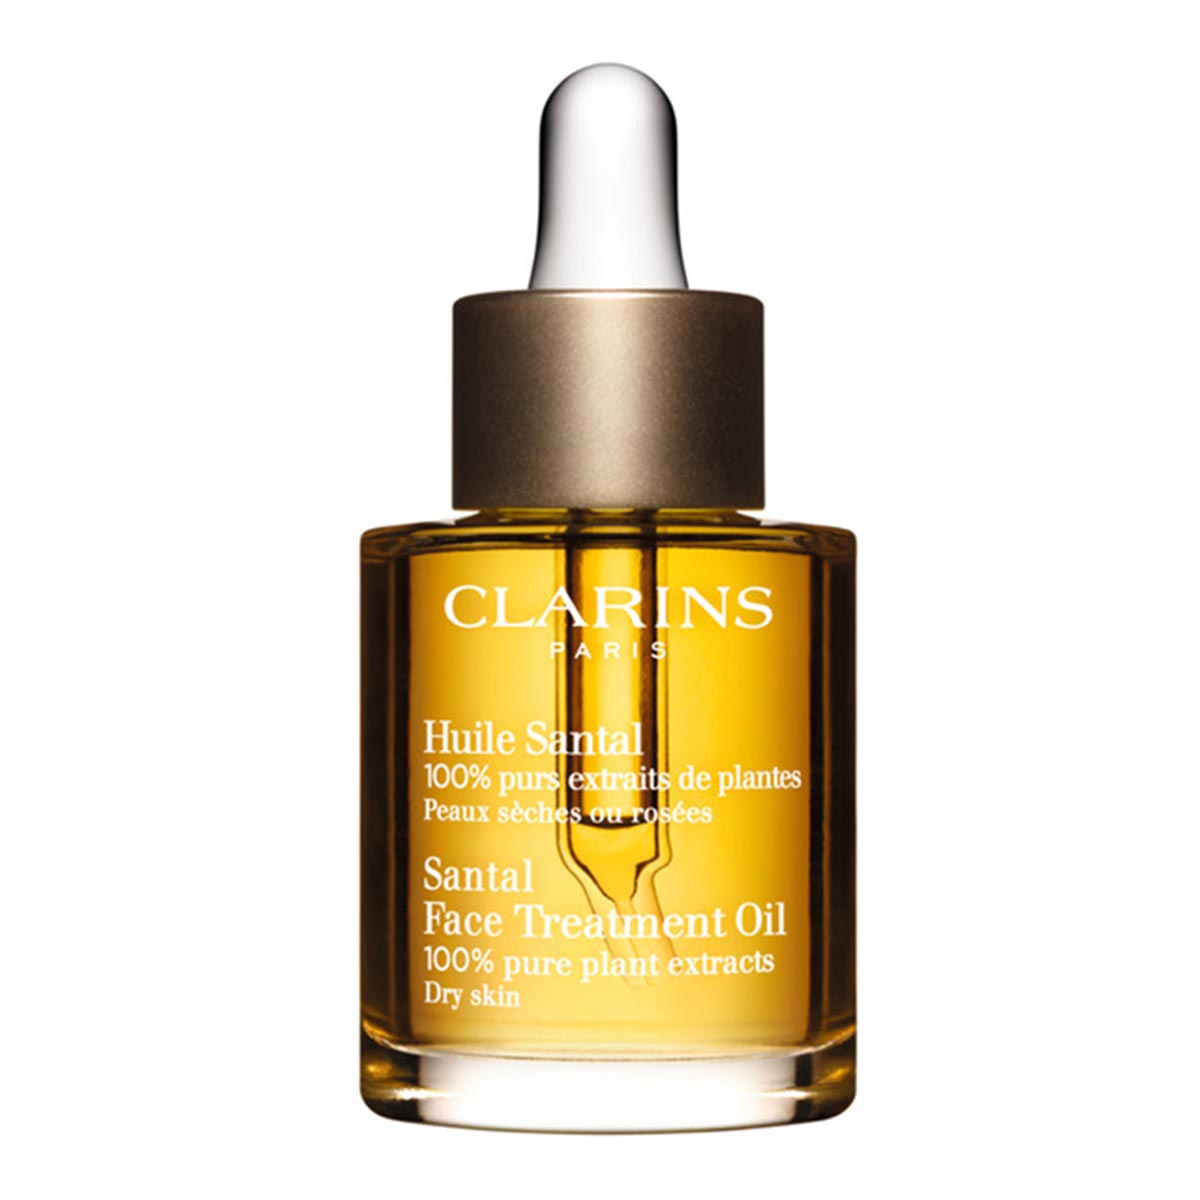 Clarins santal treatment oil face 30un